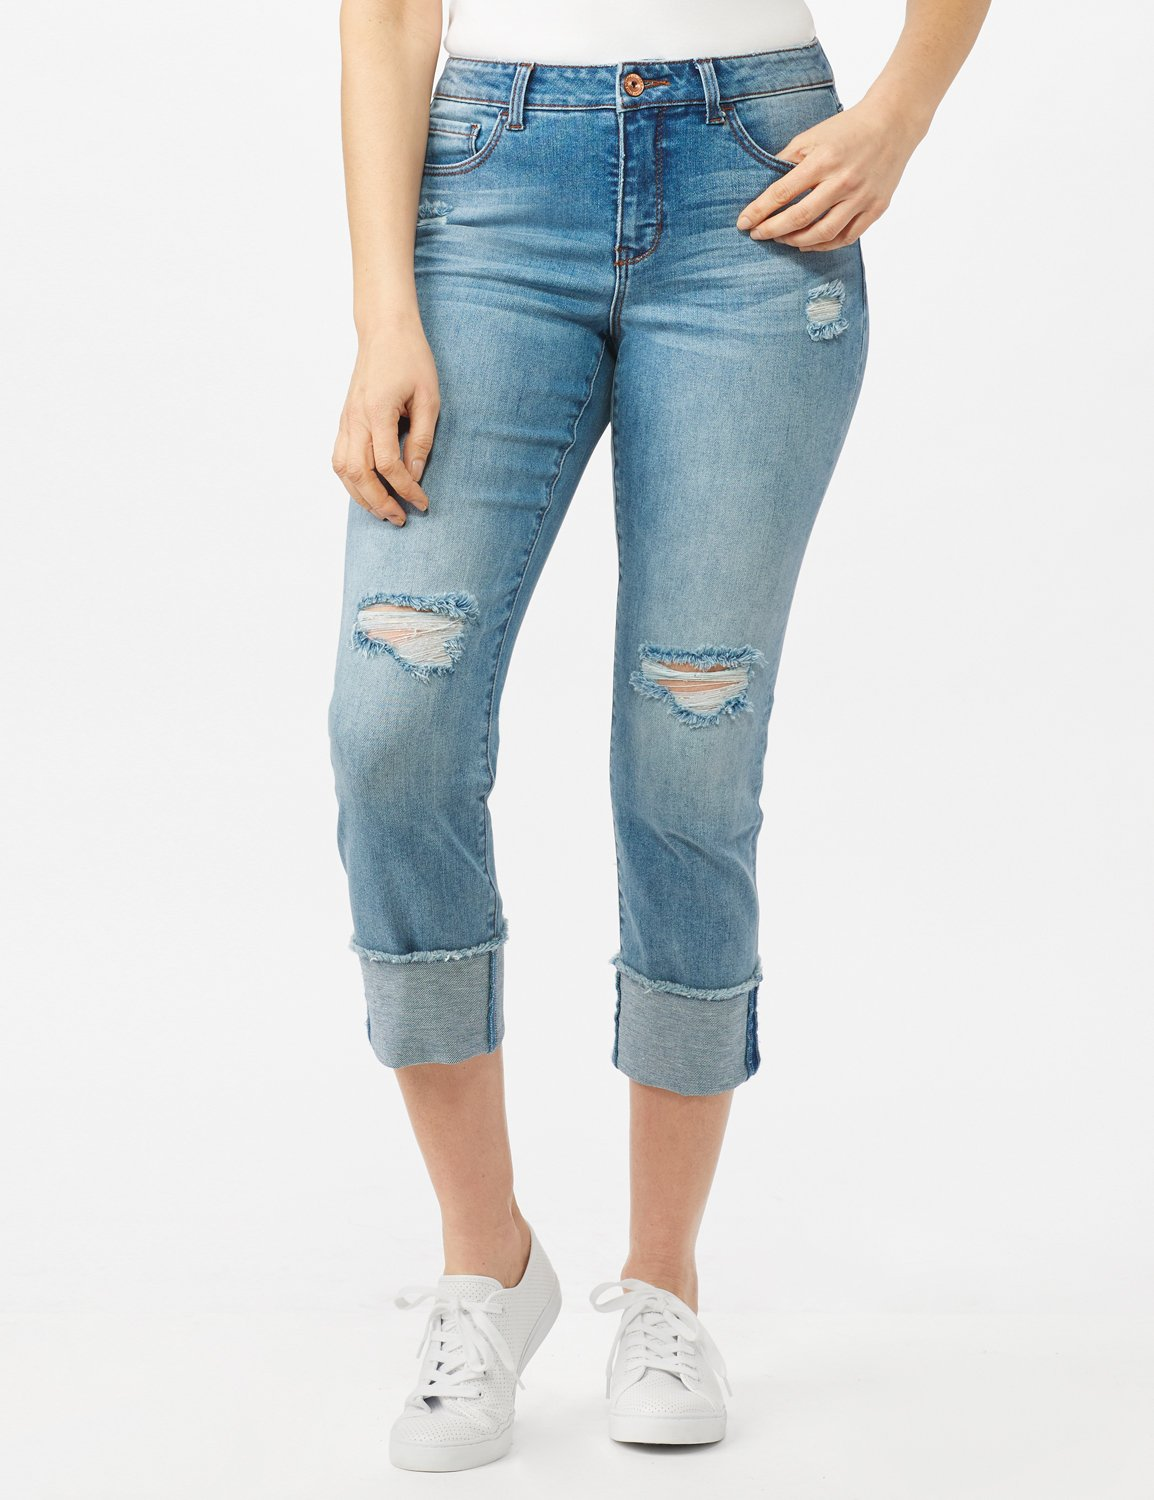 Authentic Stretch Straight Leg Denim Pants with High Fray Cuff -Robin Wash Blue - Front